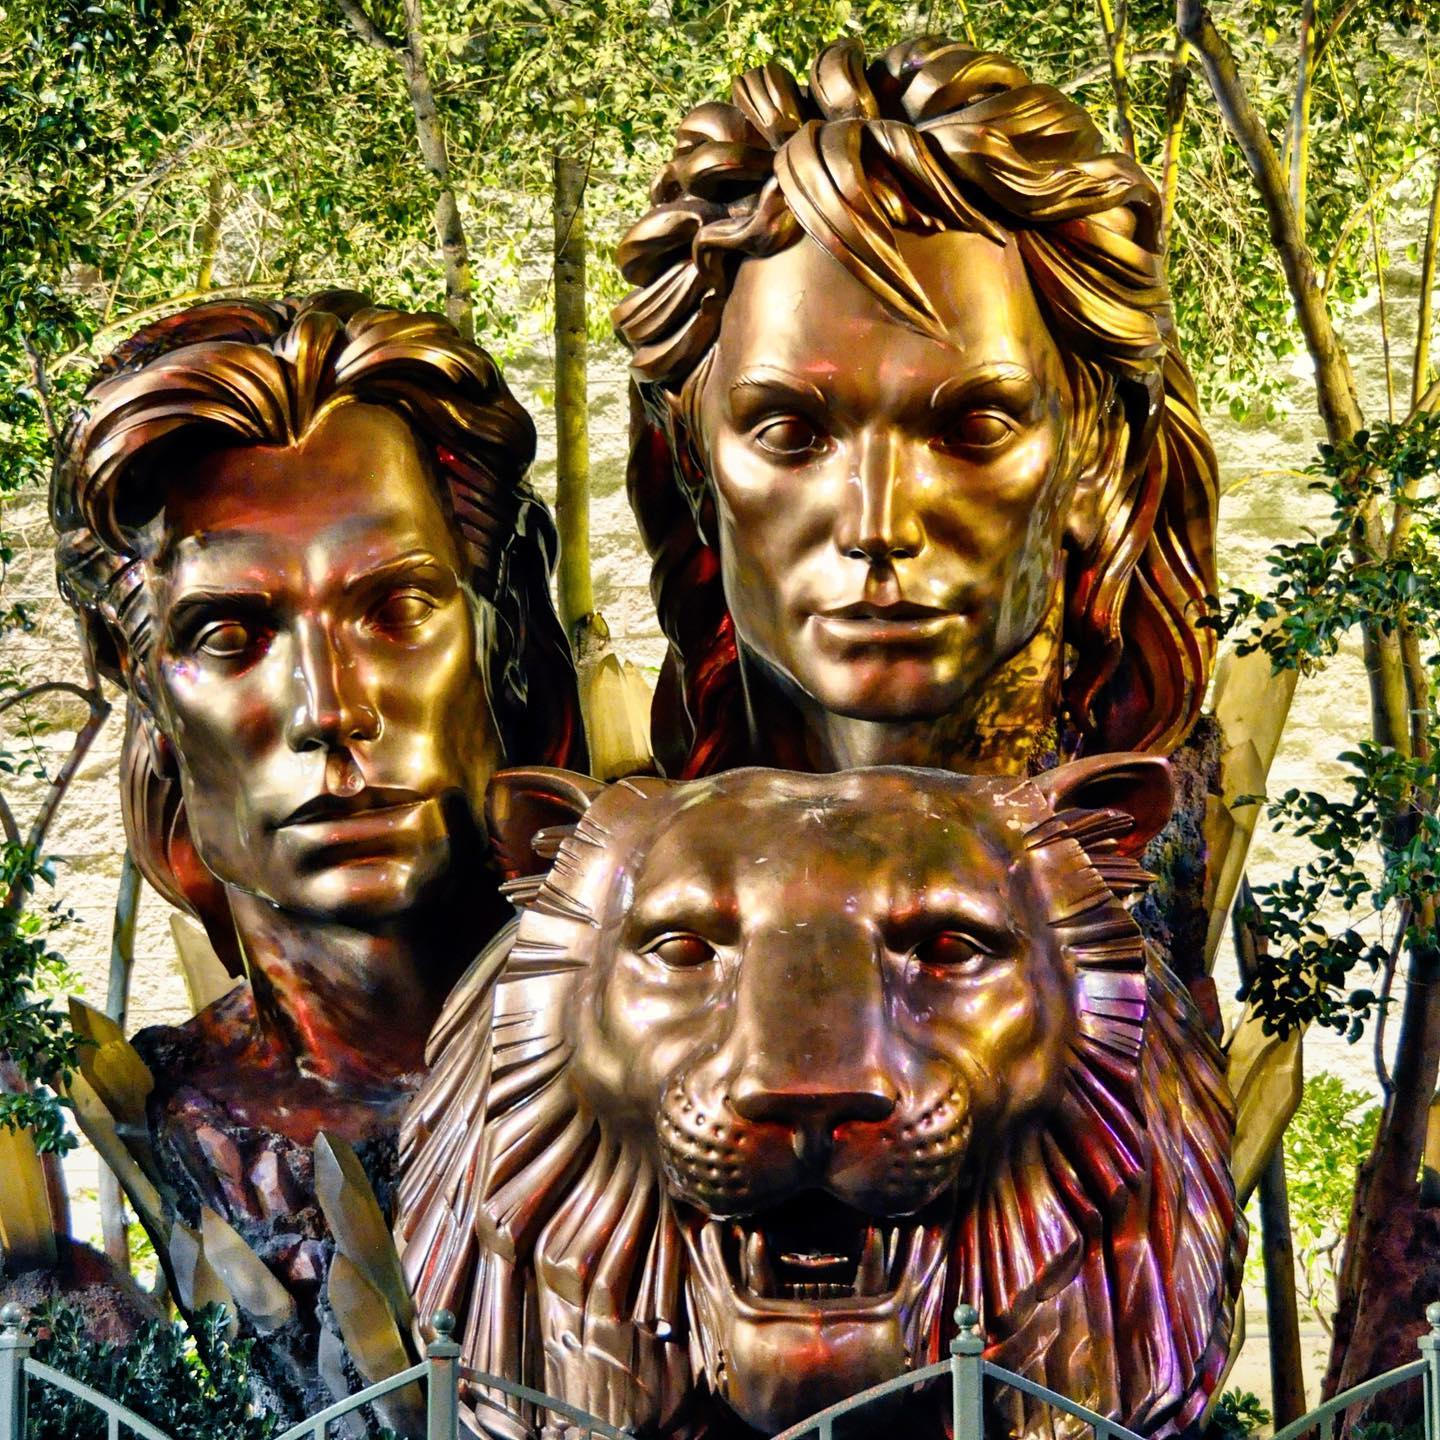 The Mirage, Las Vegas, Nevada Statue on The Mirage property facing the Strip. Siegfried & Roy were an iconic Las Vegas duo who helped to make the city shine a bit brighter. Your legacy will never die. R.I.P.🖤  #lasvegas #lasvegasstrip #lasvegasnevada #lasvegasnv #lasvegasblvd #lasvegasstrip #vegasstrip #themirage #miragelasvegas #siegfriedandroy #siegfriedfischbacher #royhorn #illusion #illusionist #magic #magician #lasvegaslegends #lasvegasshows #lasvegasentertainment #lasvegasicons #lasvegasshow